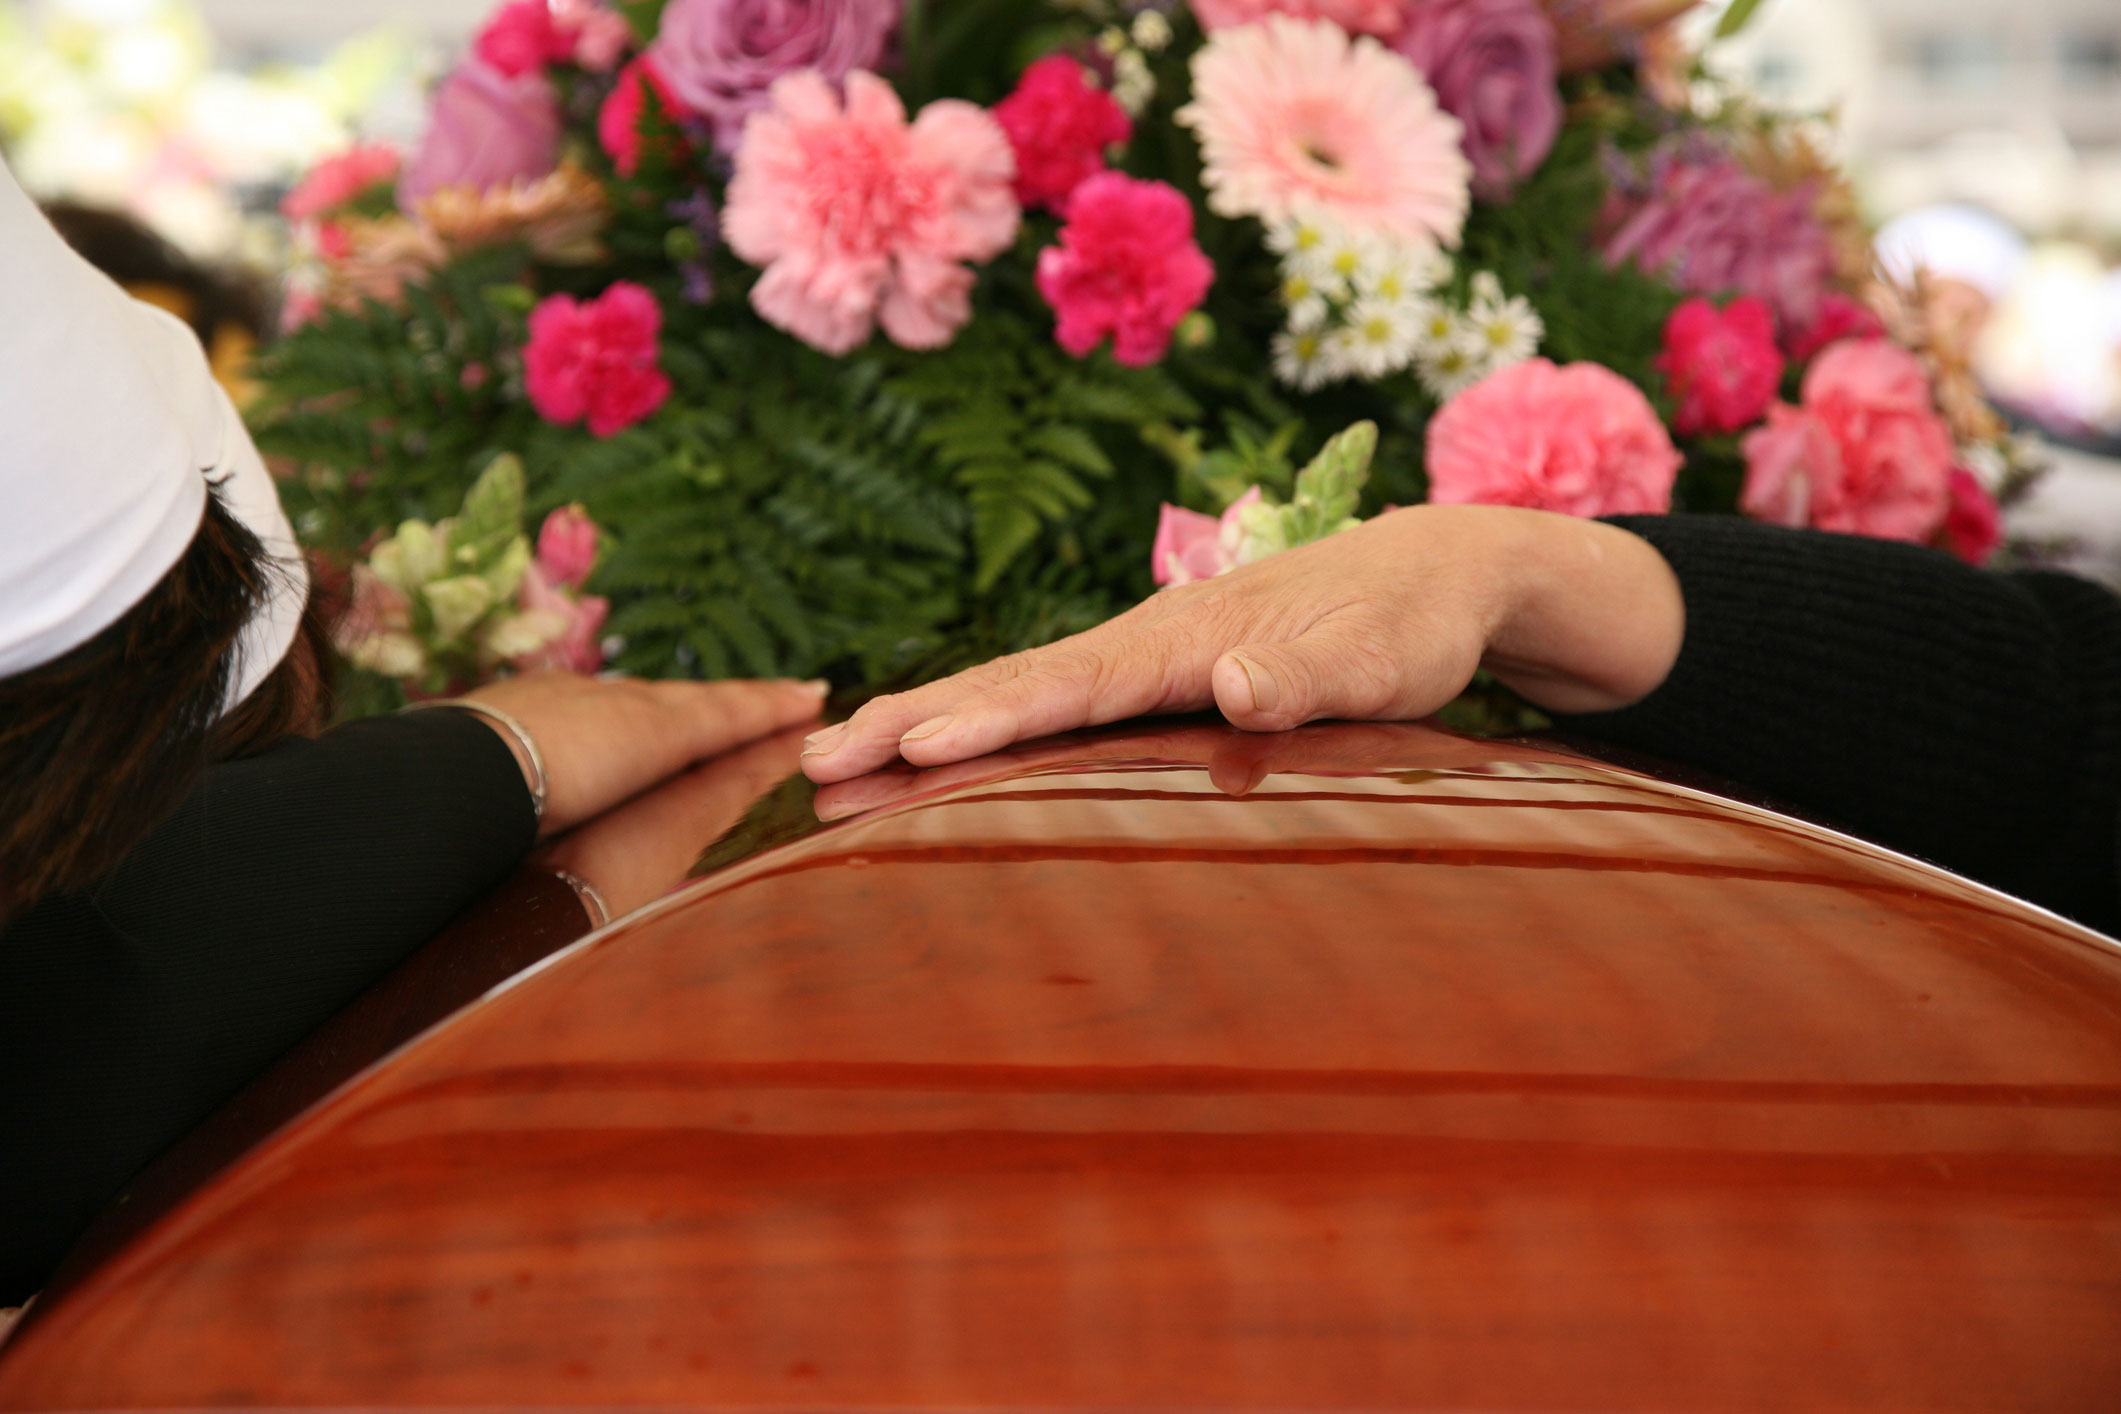 hands-on-casket